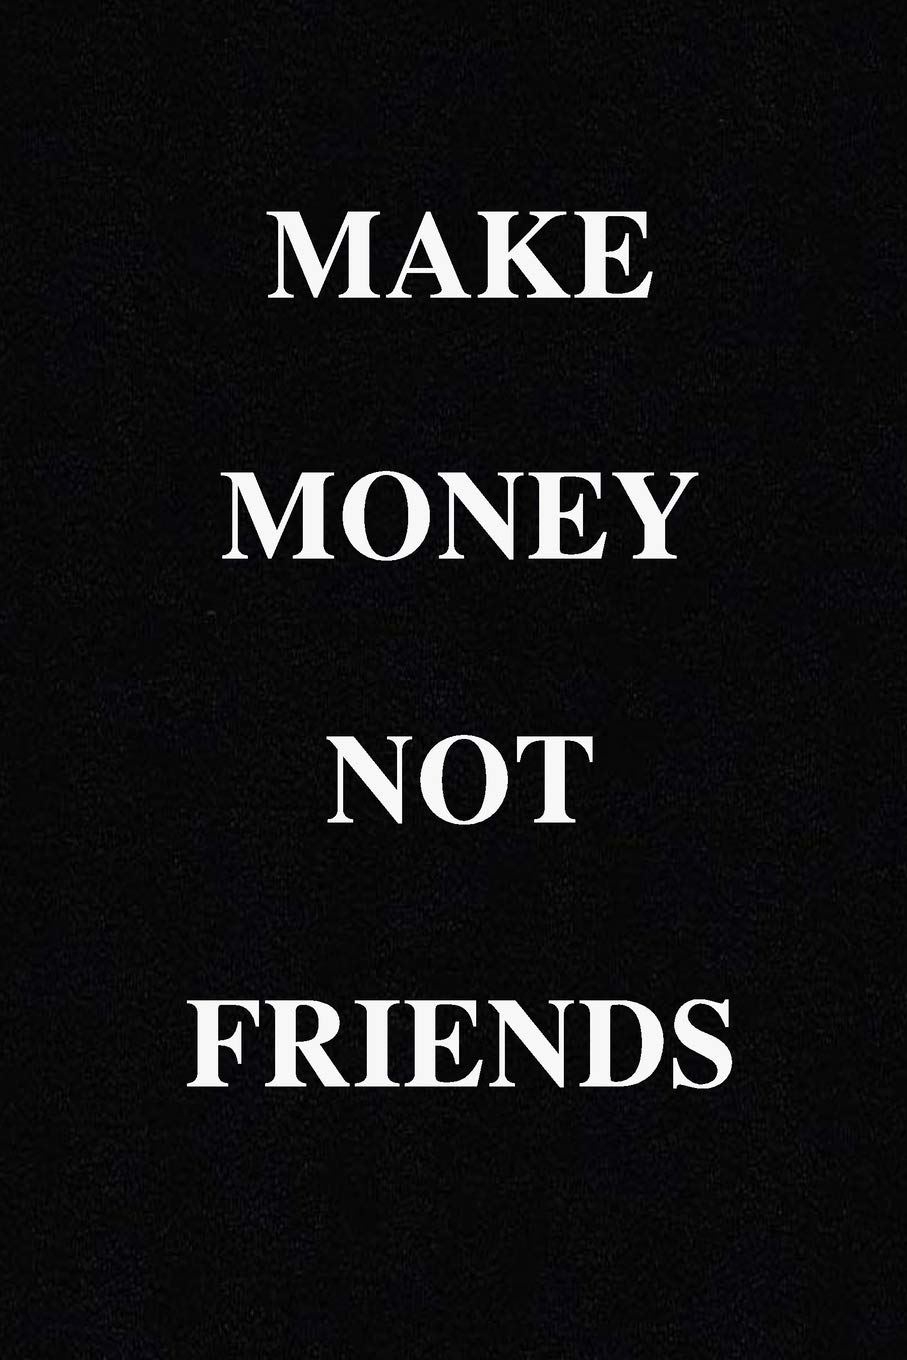 Make Money Not Friends Notebook 120 Lined Pages Inspirational Quote Notebook To Write In Size 6x 9 Inches Books Holly 9781671916241 Amazon Com Books